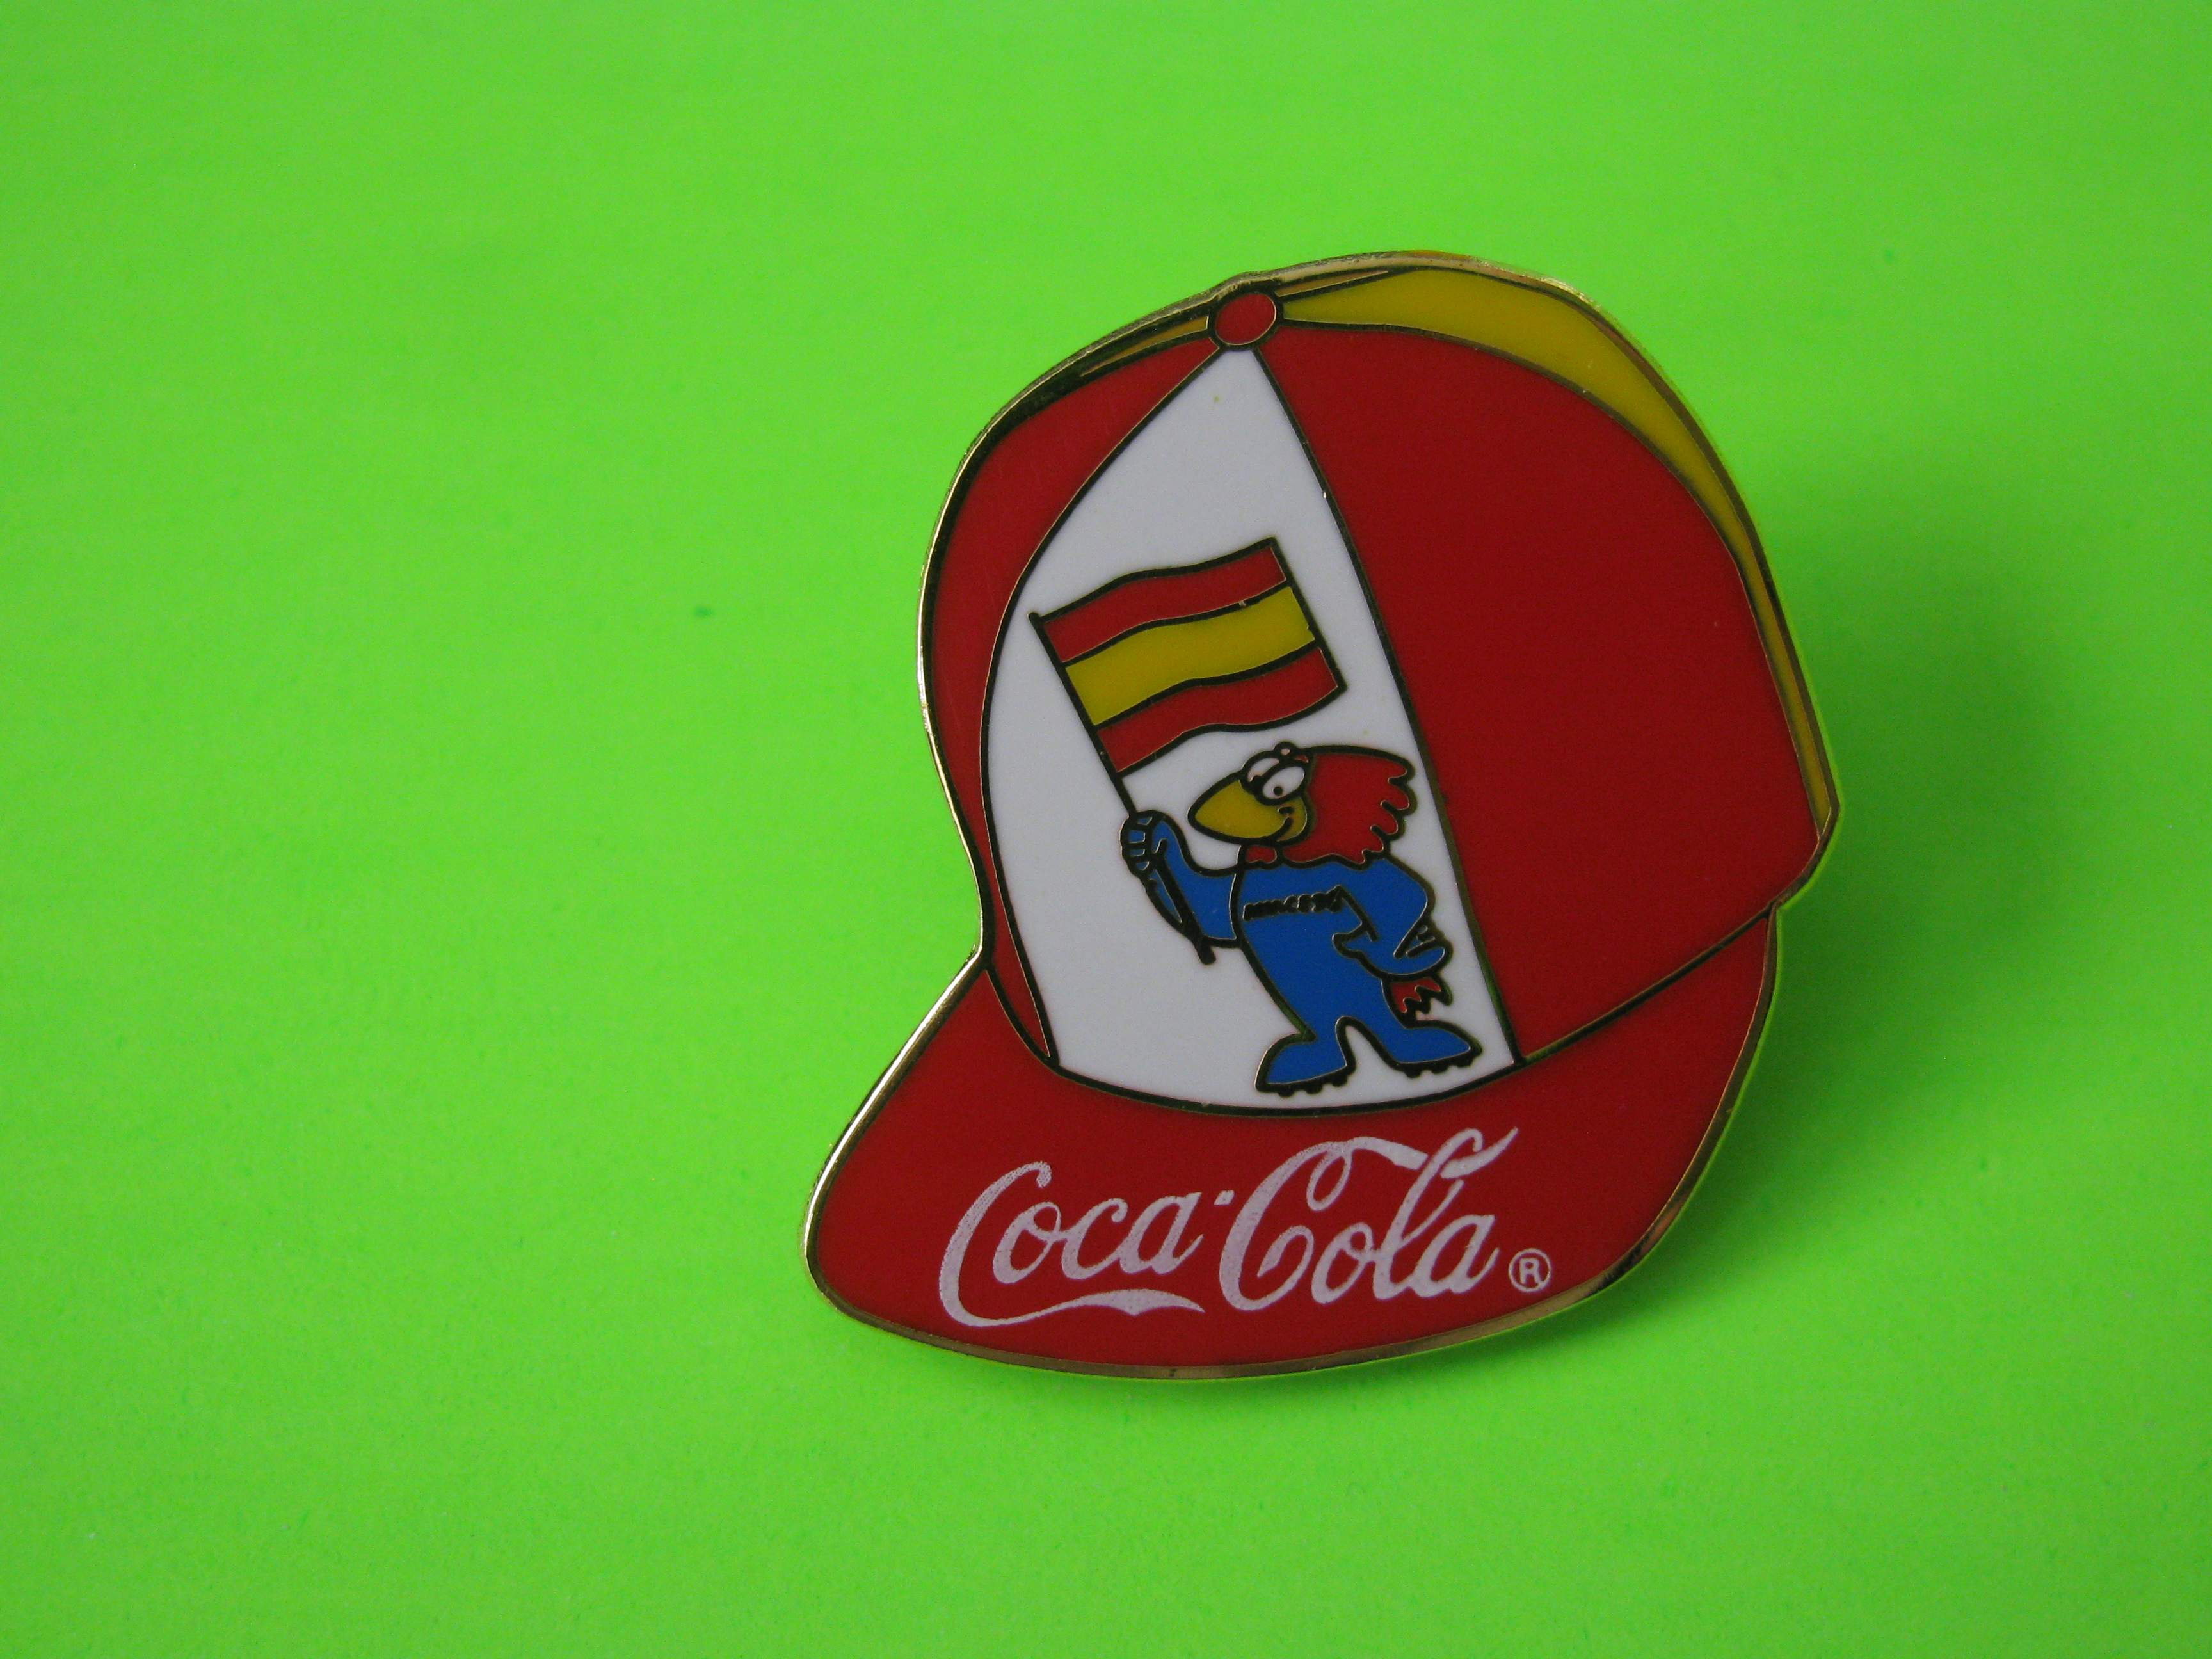 1995 Coca-Cola Promo Soccer Pin, Spain, Ball Cap Shaped, Metal with Butterfly Clutch